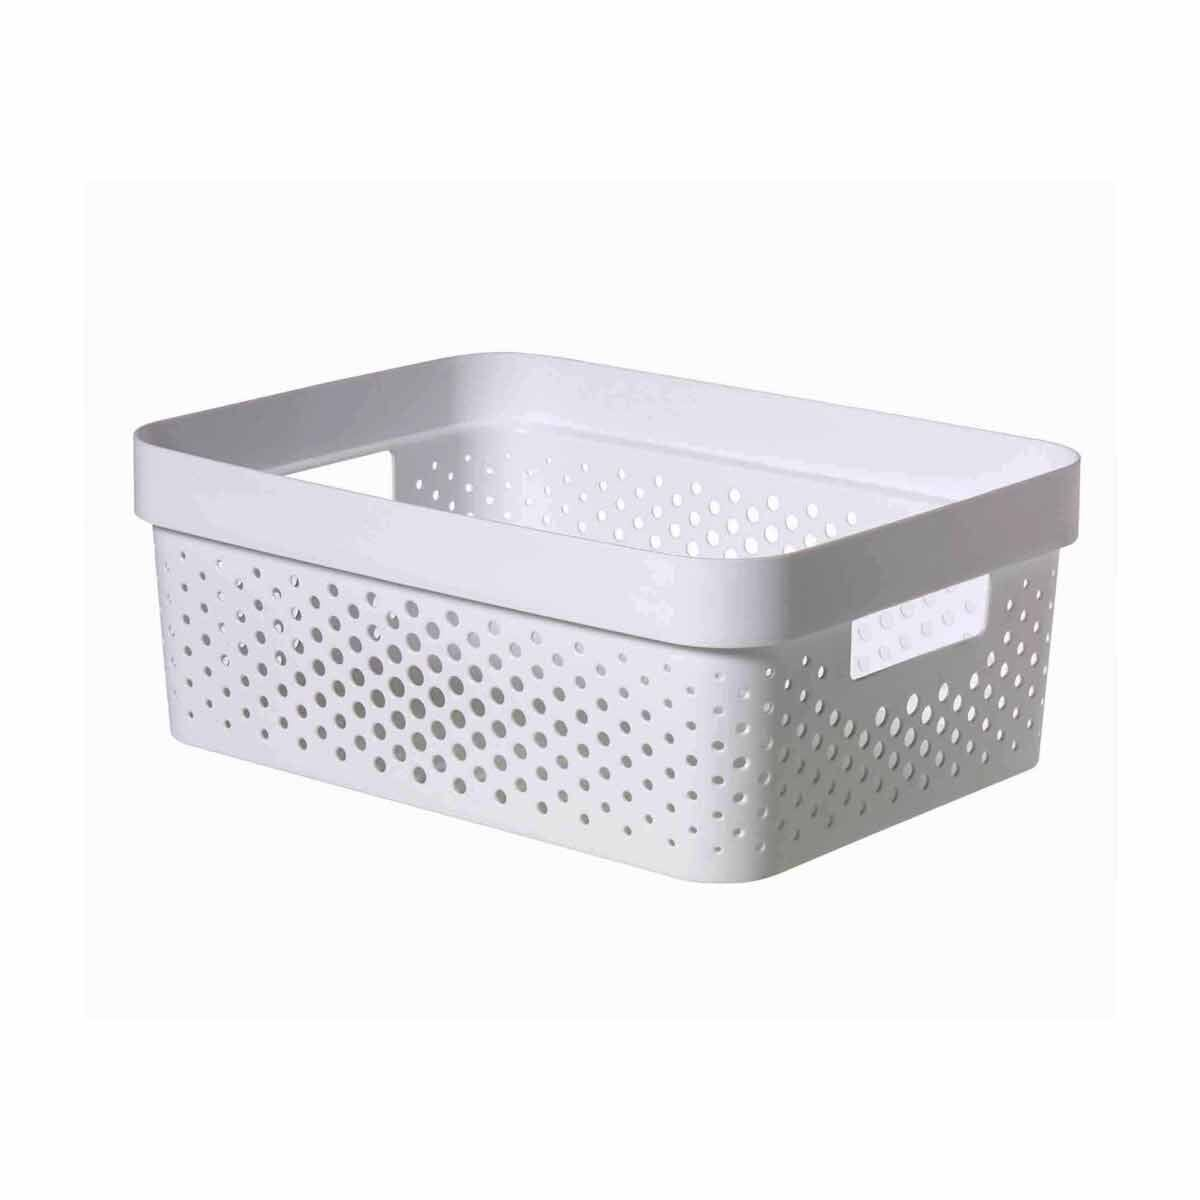 Curver Infinity Recycled Storage Basket 11 Litres Pack of 6 White